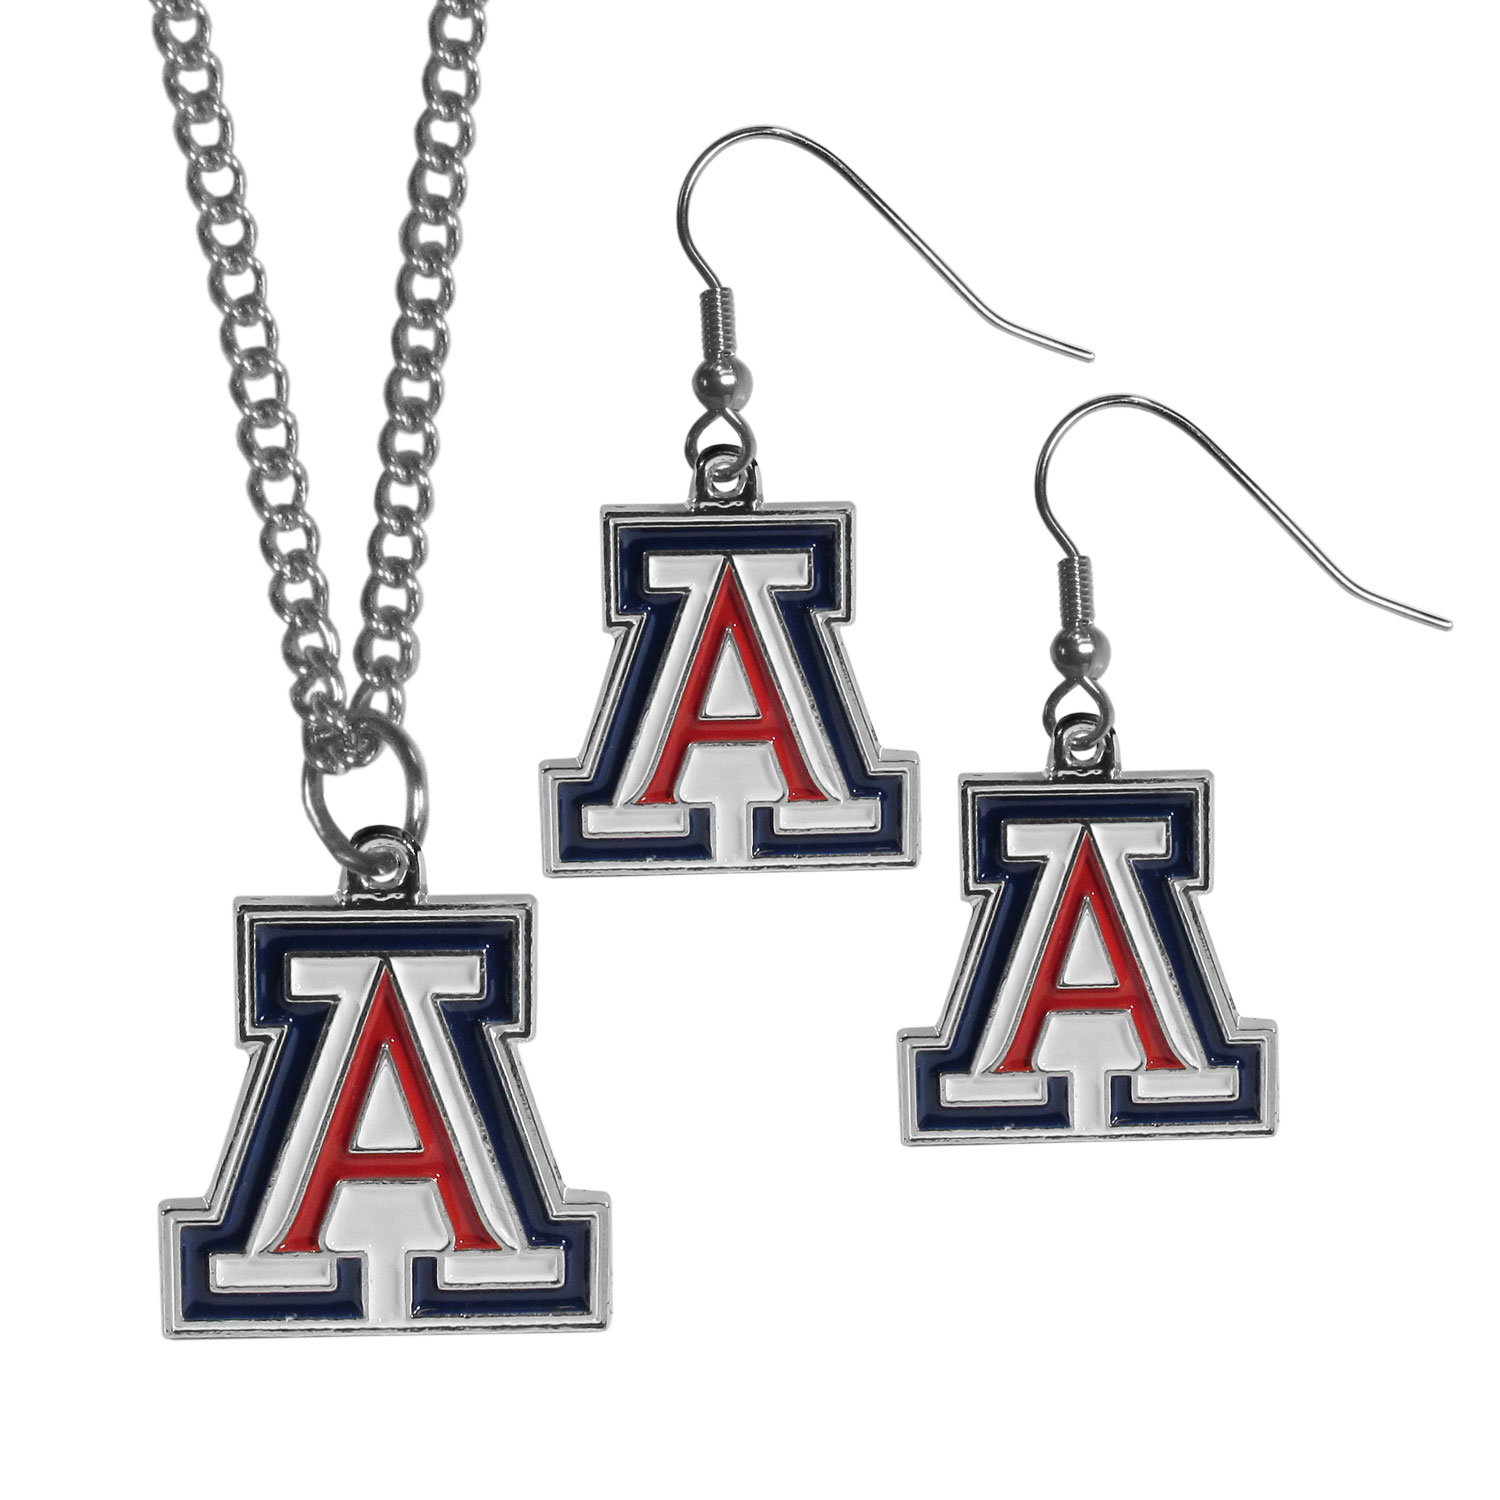 Arizona Wildcats Dangle Earrings and Chain Necklace Set - This classic jewelry set contains are most popular Arizona Wildcats dangle earrings and 22 inch chain necklace. The trendy, dangle earrings are lightweight and feature a fully cast metal team charm with enameled team colors. The matching necklace completes this fashion forward combo and is a spirited set that is perfect for game day but nice enough for everyday.